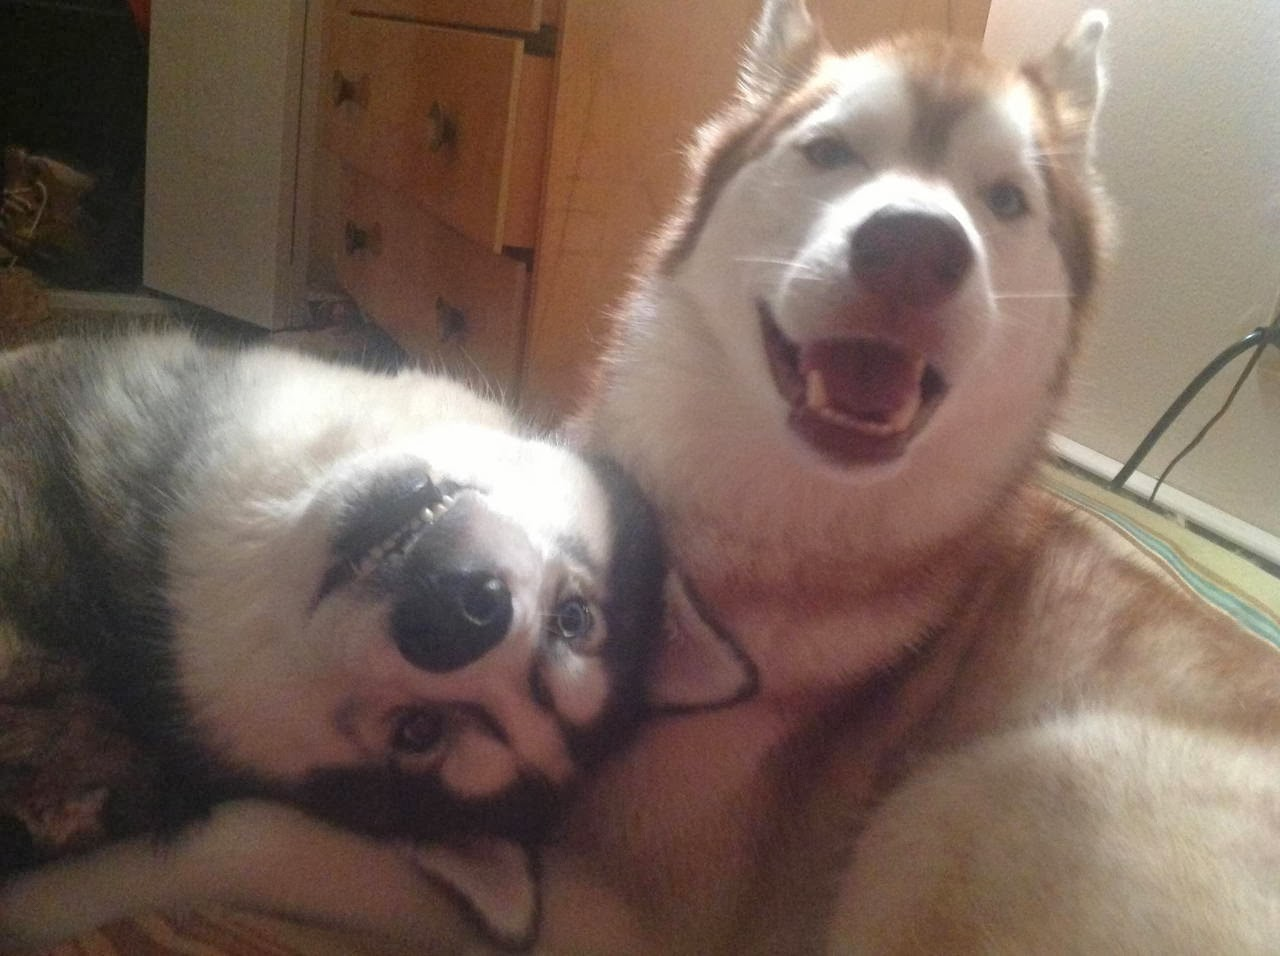 Cute dogs - part 6 (50 pics), two huskies being adorable